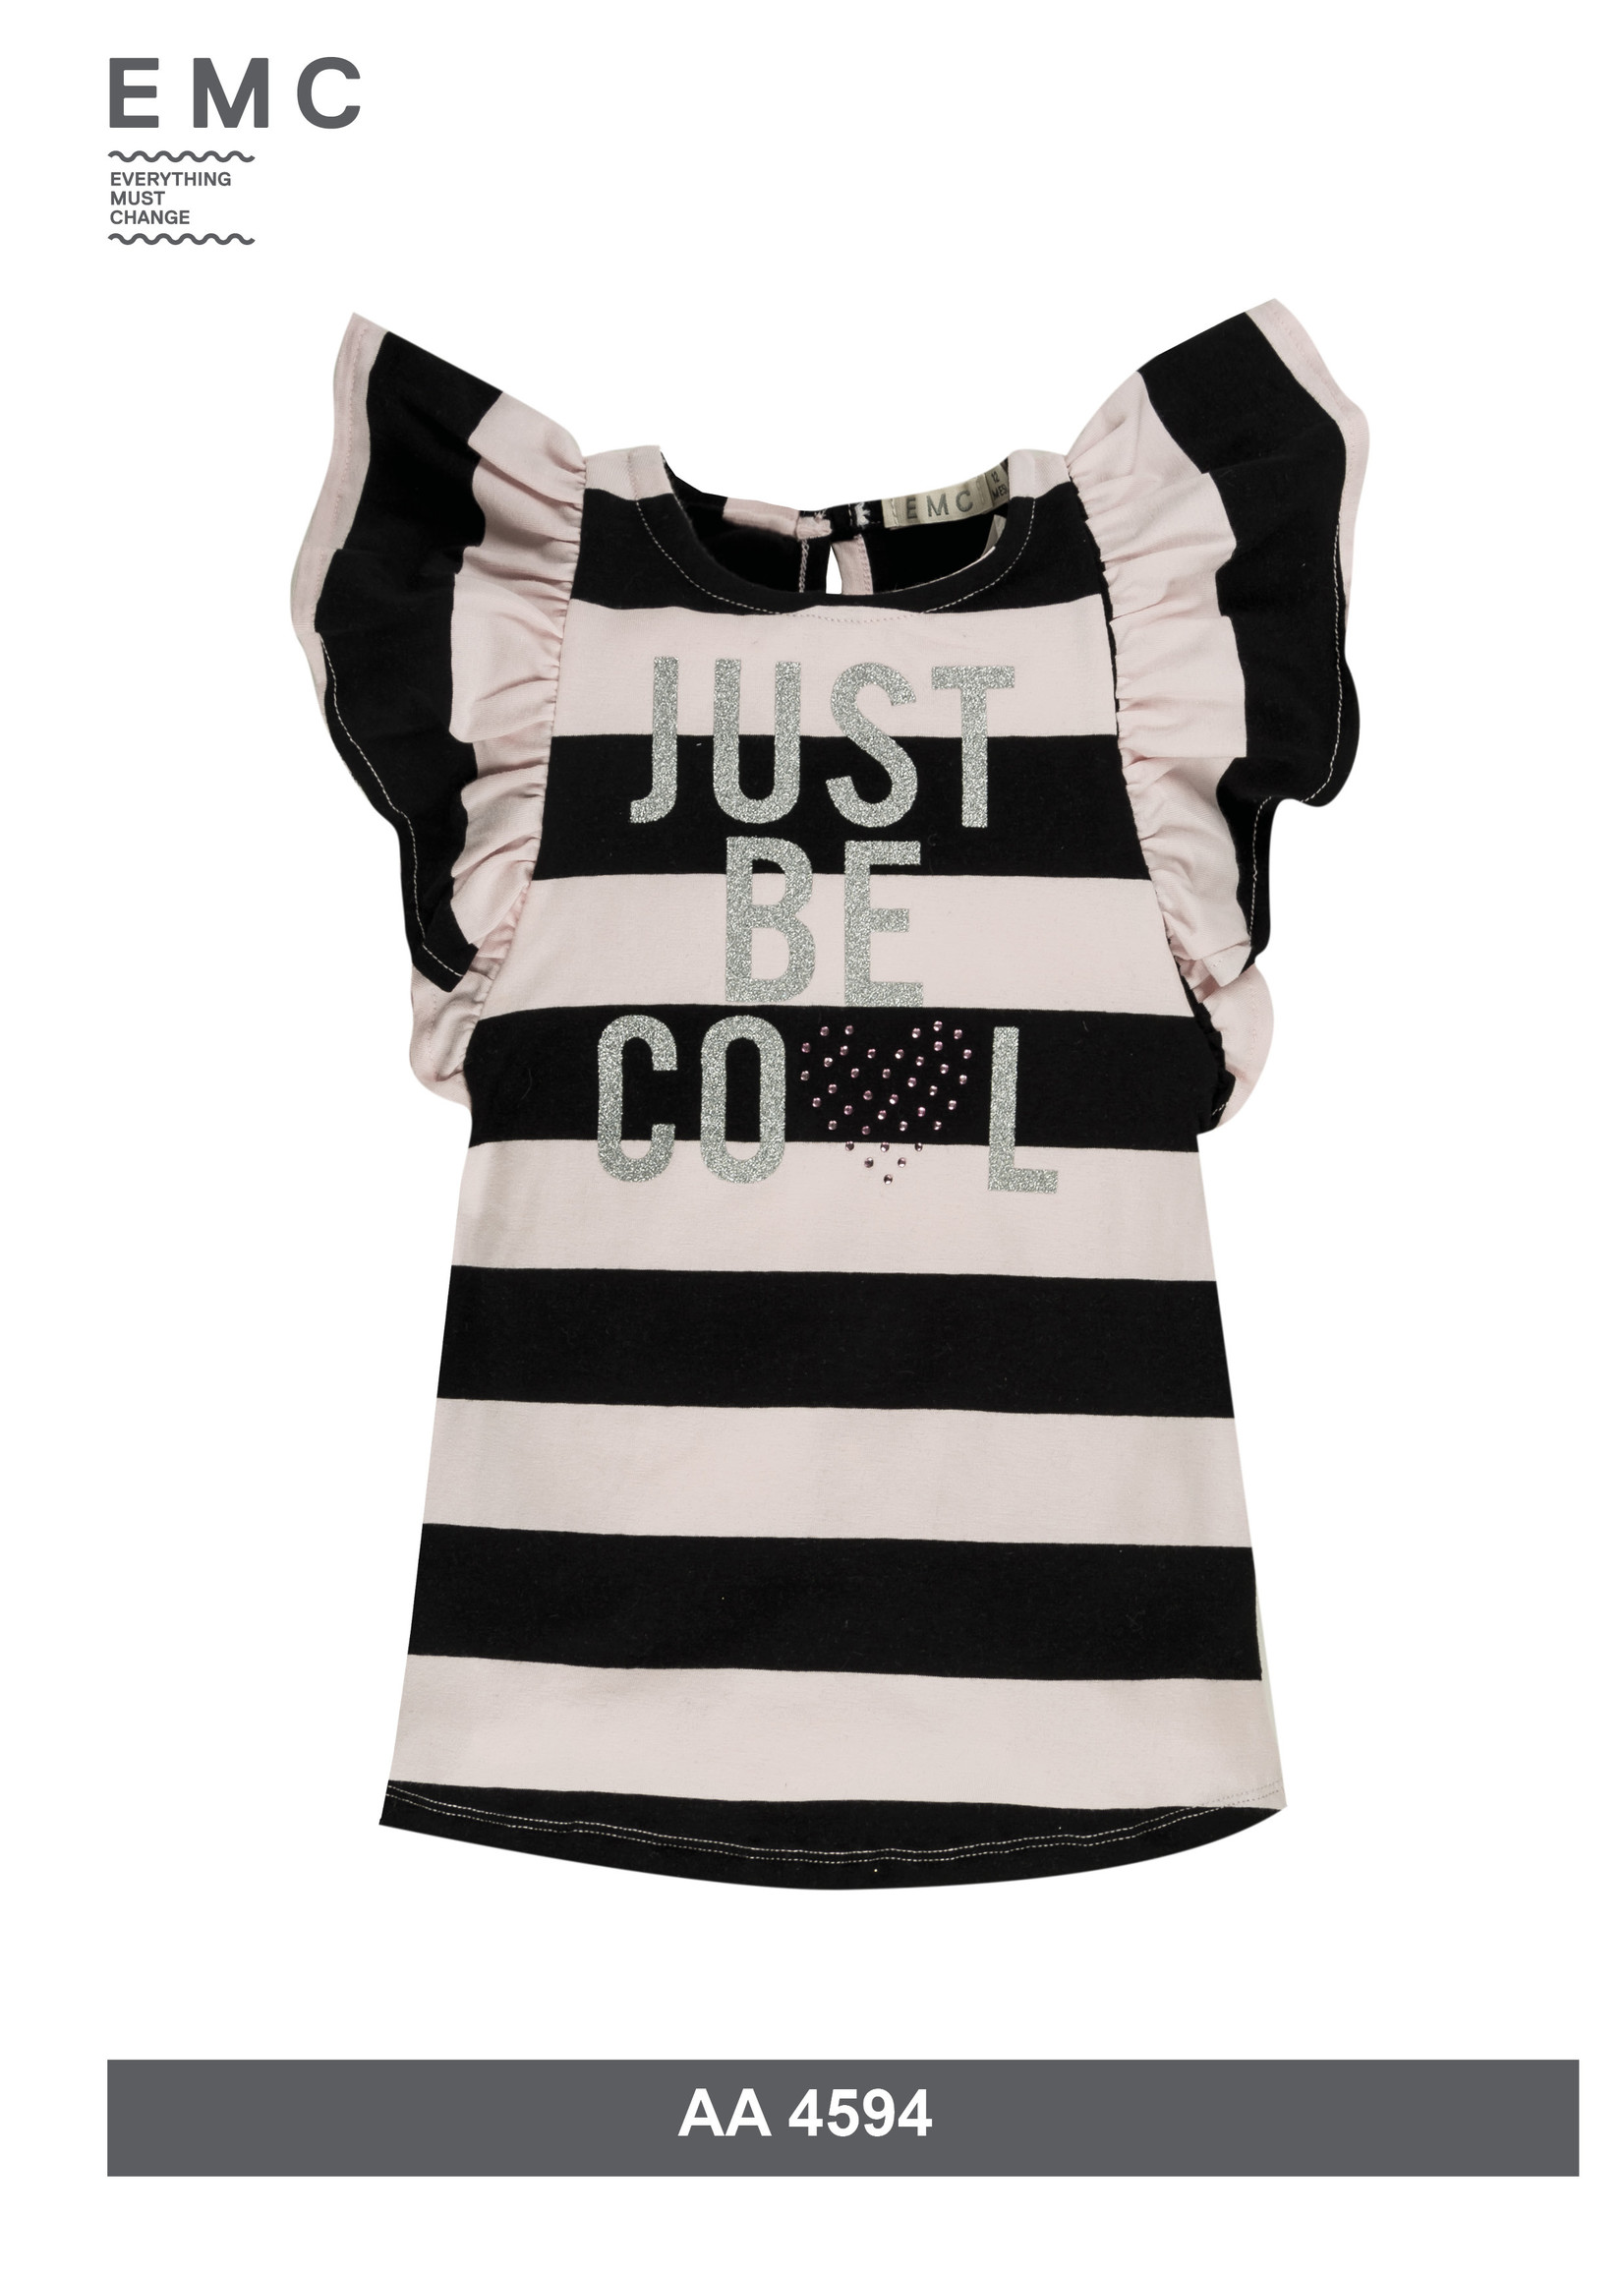 EMC EMC Just be cool dress